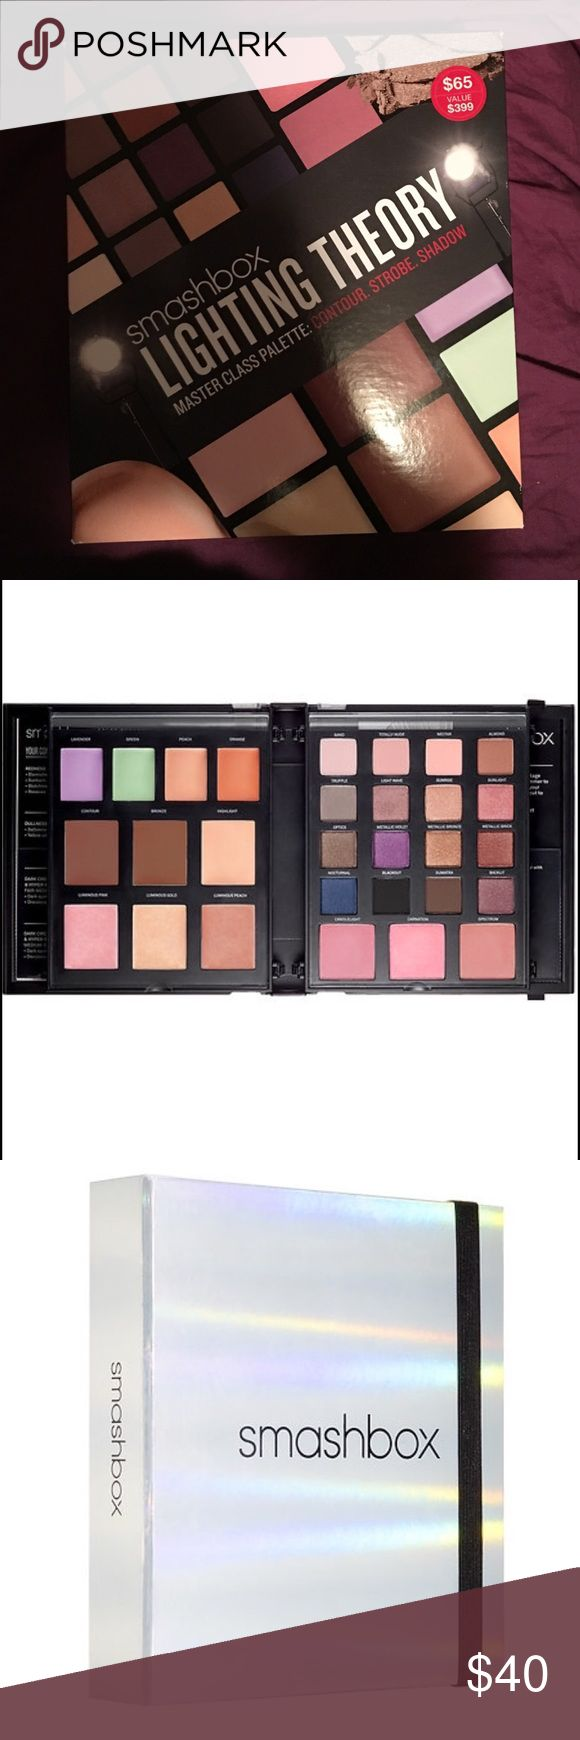 SALE! Early Black Friday! Smashbox Lighting Theory Brand new!!! Never even opened smashbox lighting theory master class palette. This is a beautiful palette. Great value overall :) Smashbox Makeup